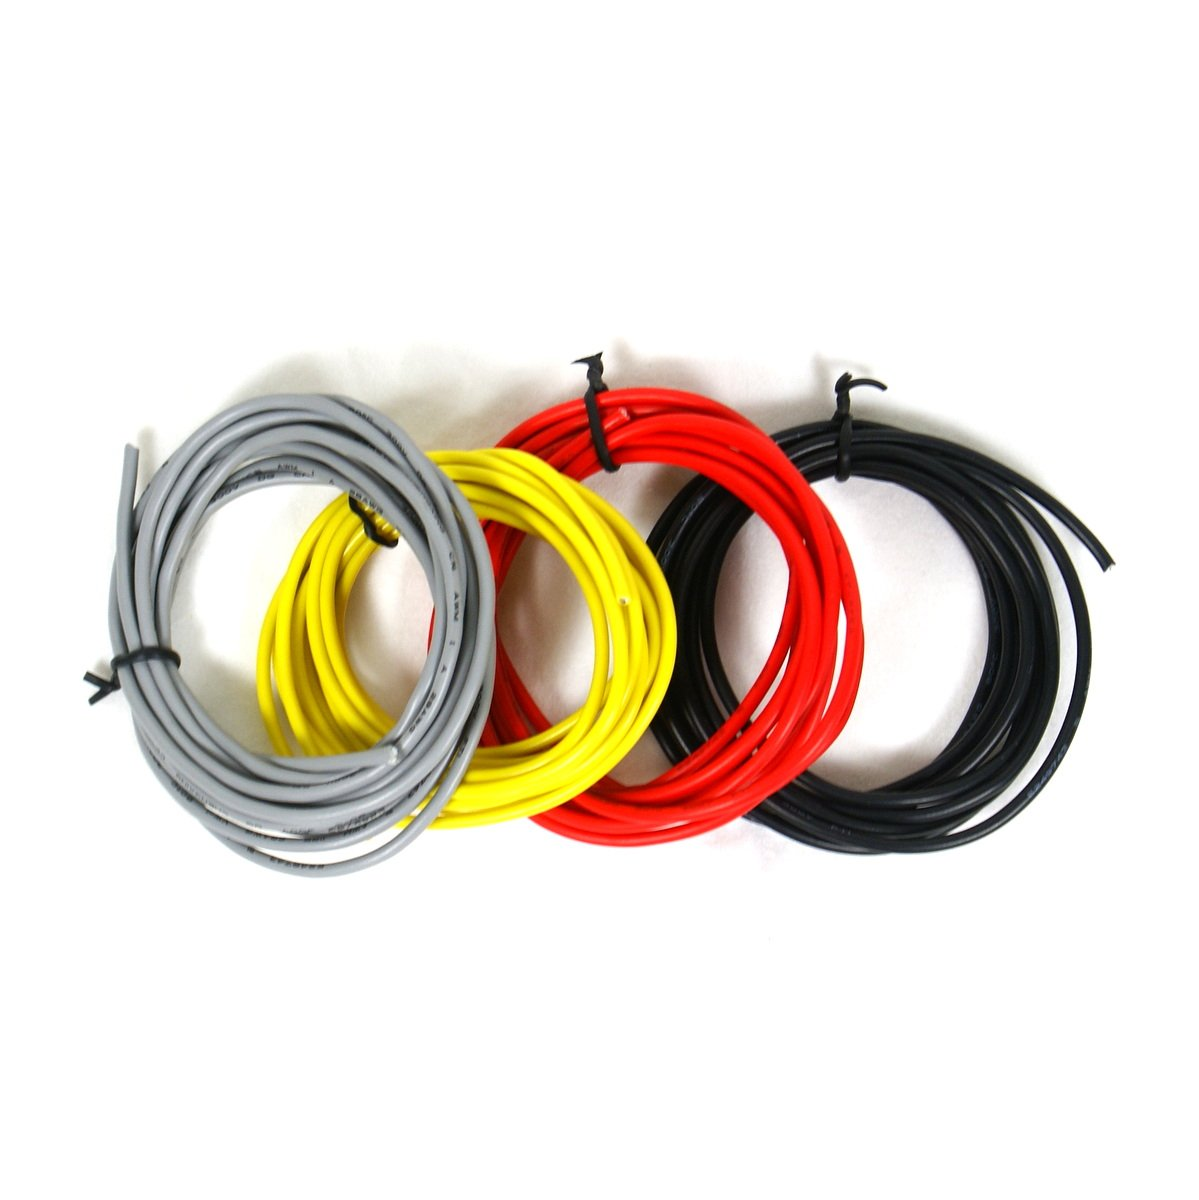 Set of 4 6-foot Shielded Guitar Circuit Wire Single Conductor - Red,yellow,black & Gray